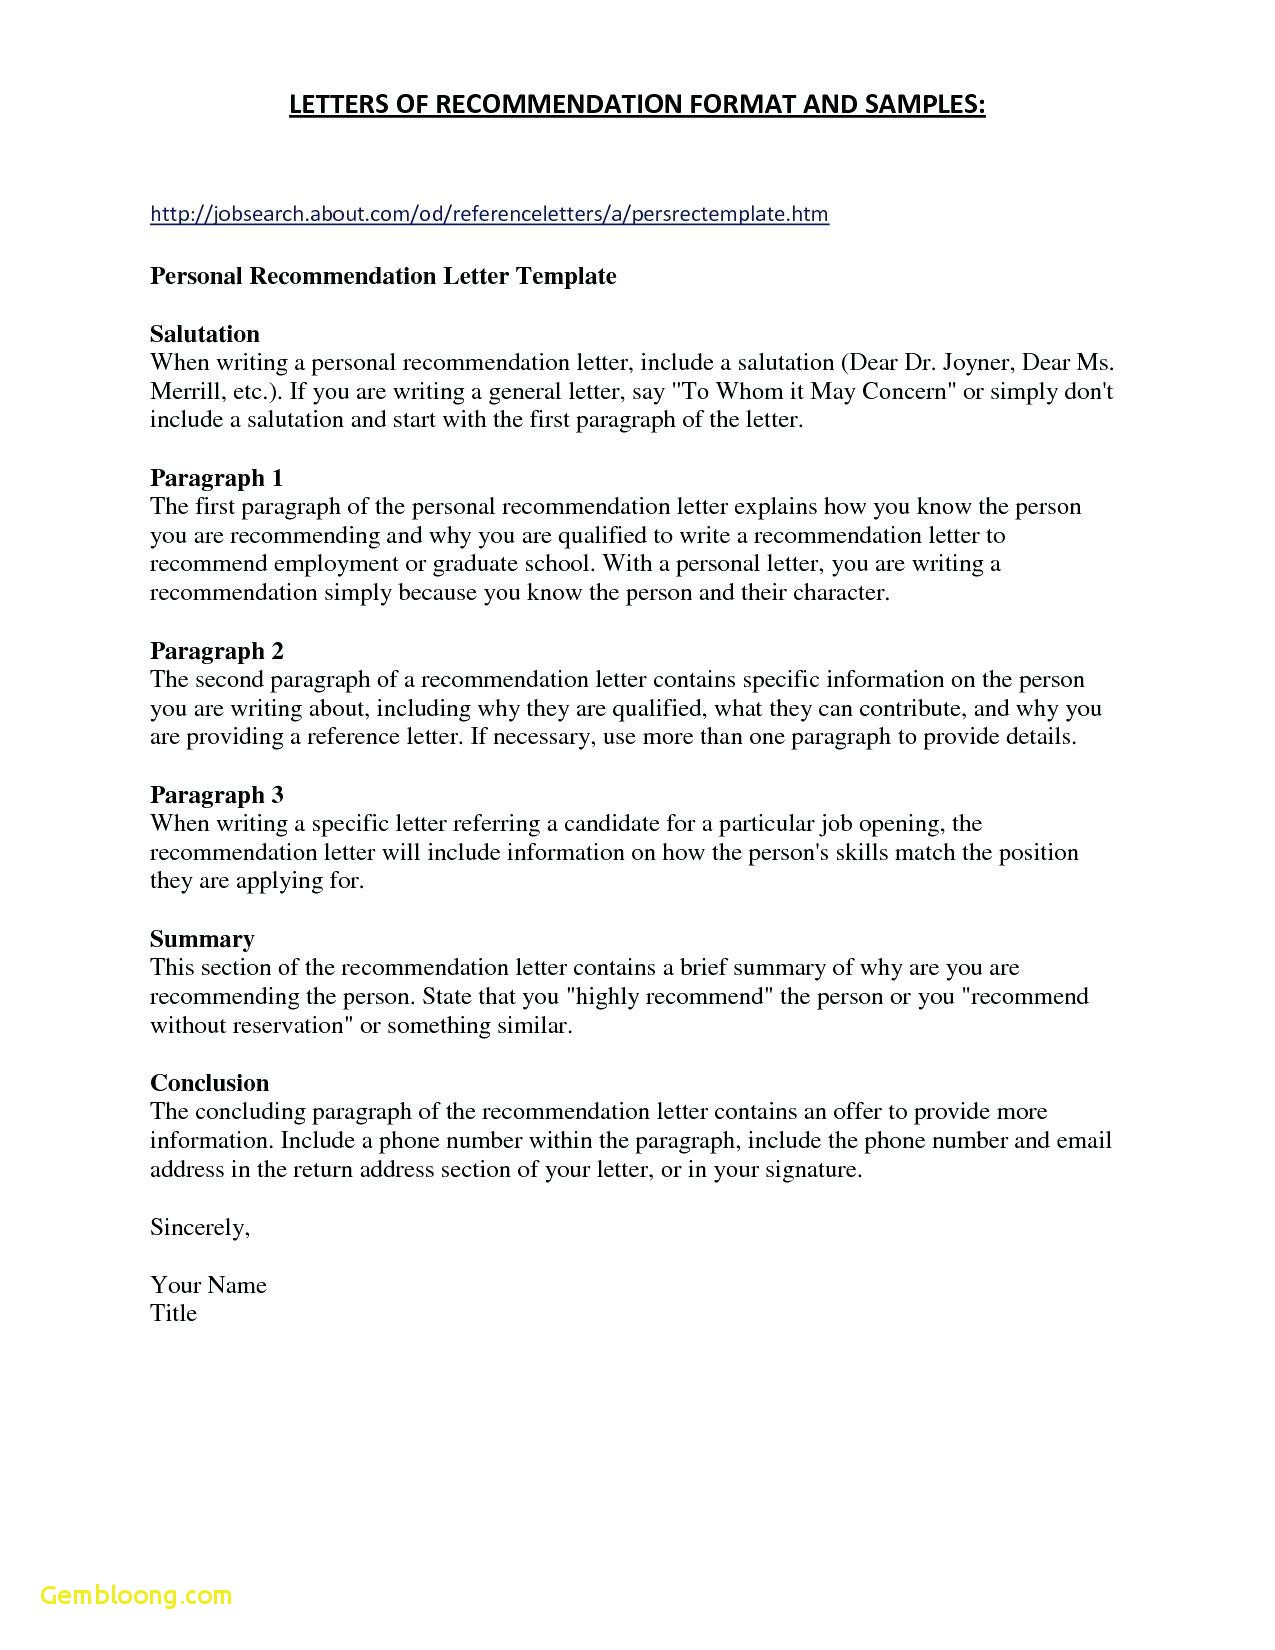 Resume Template for Letter Of Recommendation - Reference Letter format Personal Fresh References for Resume